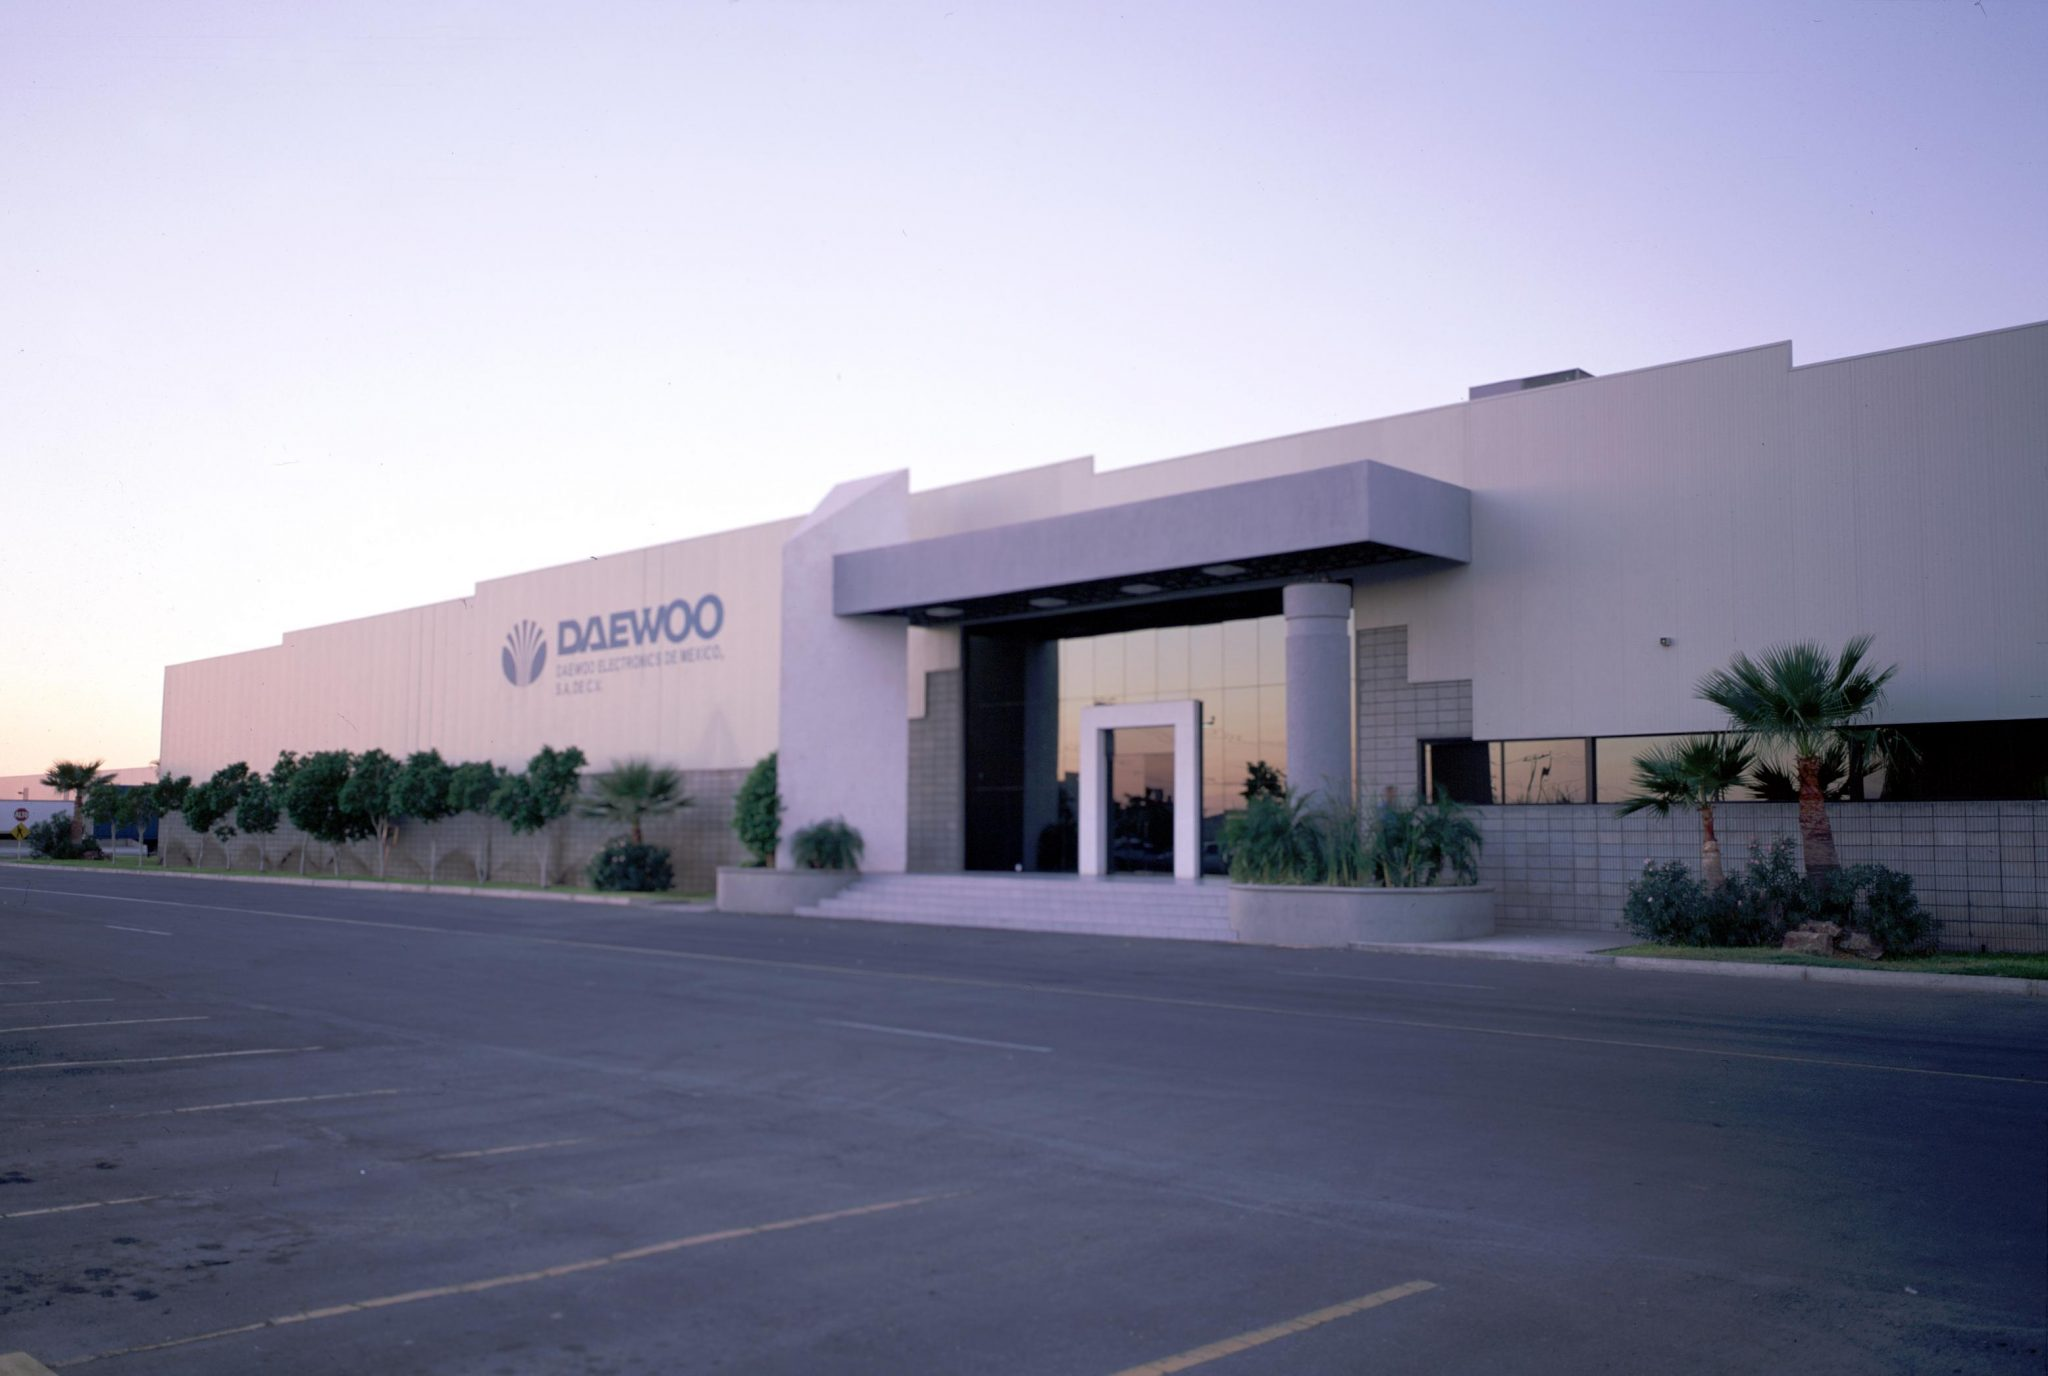 Eye level shot of DAEWOO Electronics industrial facility in San Luis Rio Colorado, Sonora